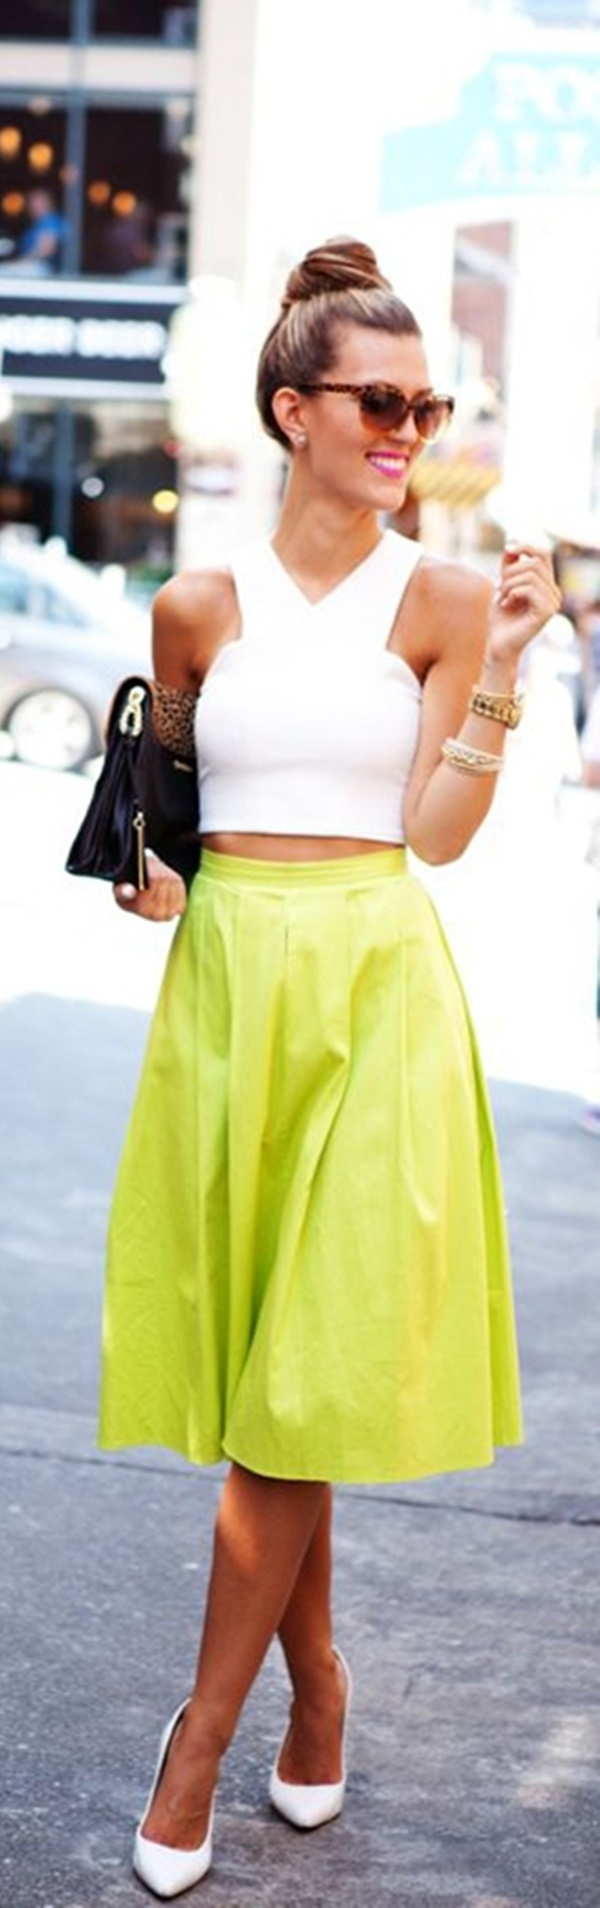 neon outfits (56)